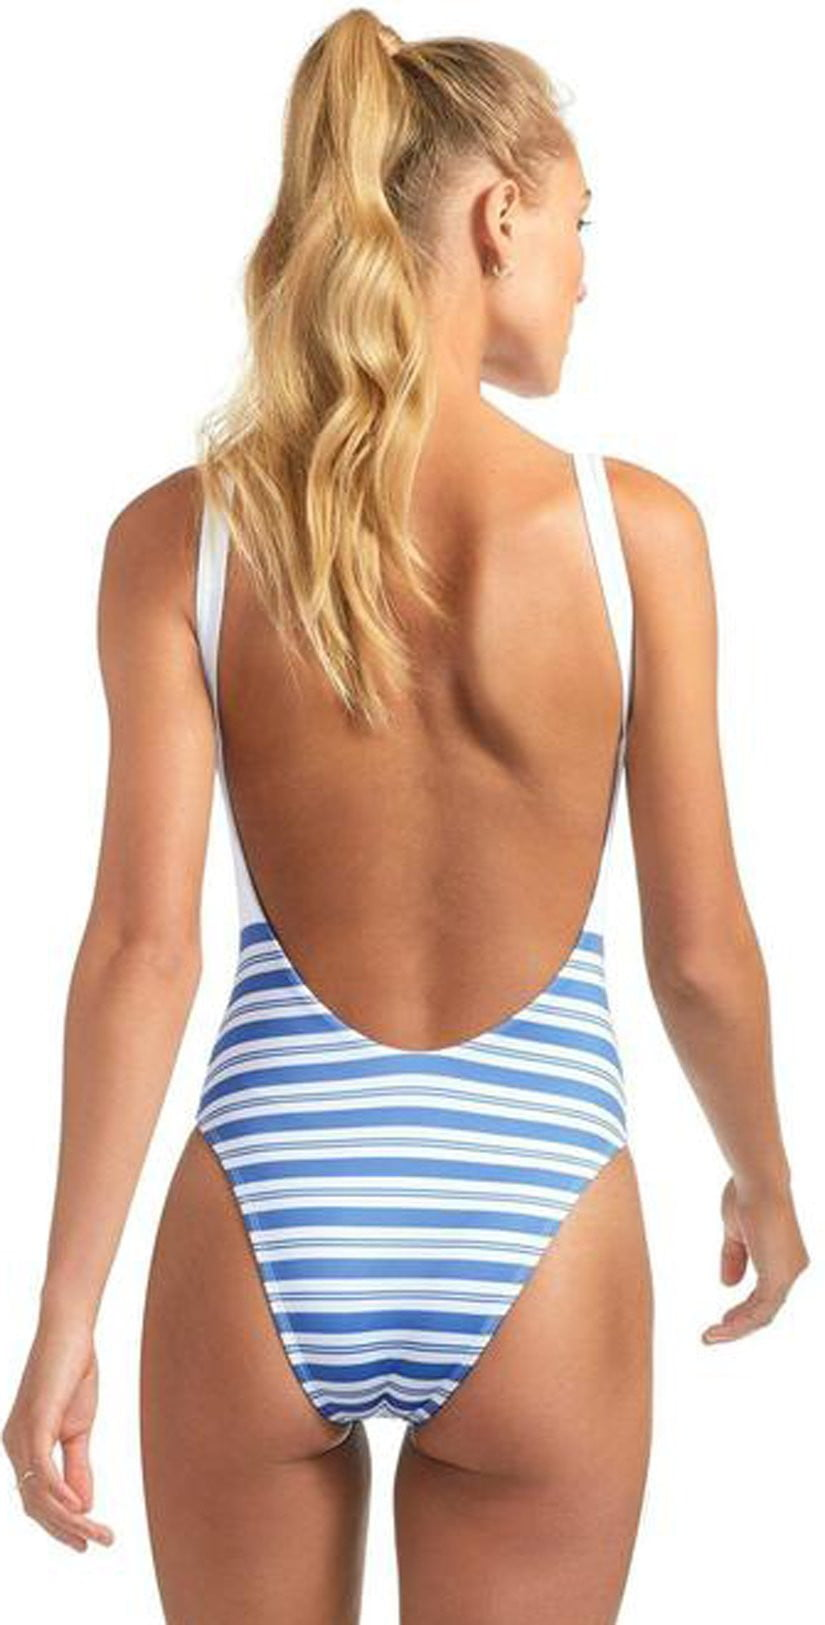 Vitamin A Leah One Piece Bodysuit in Regatta Stripe 76M REG: